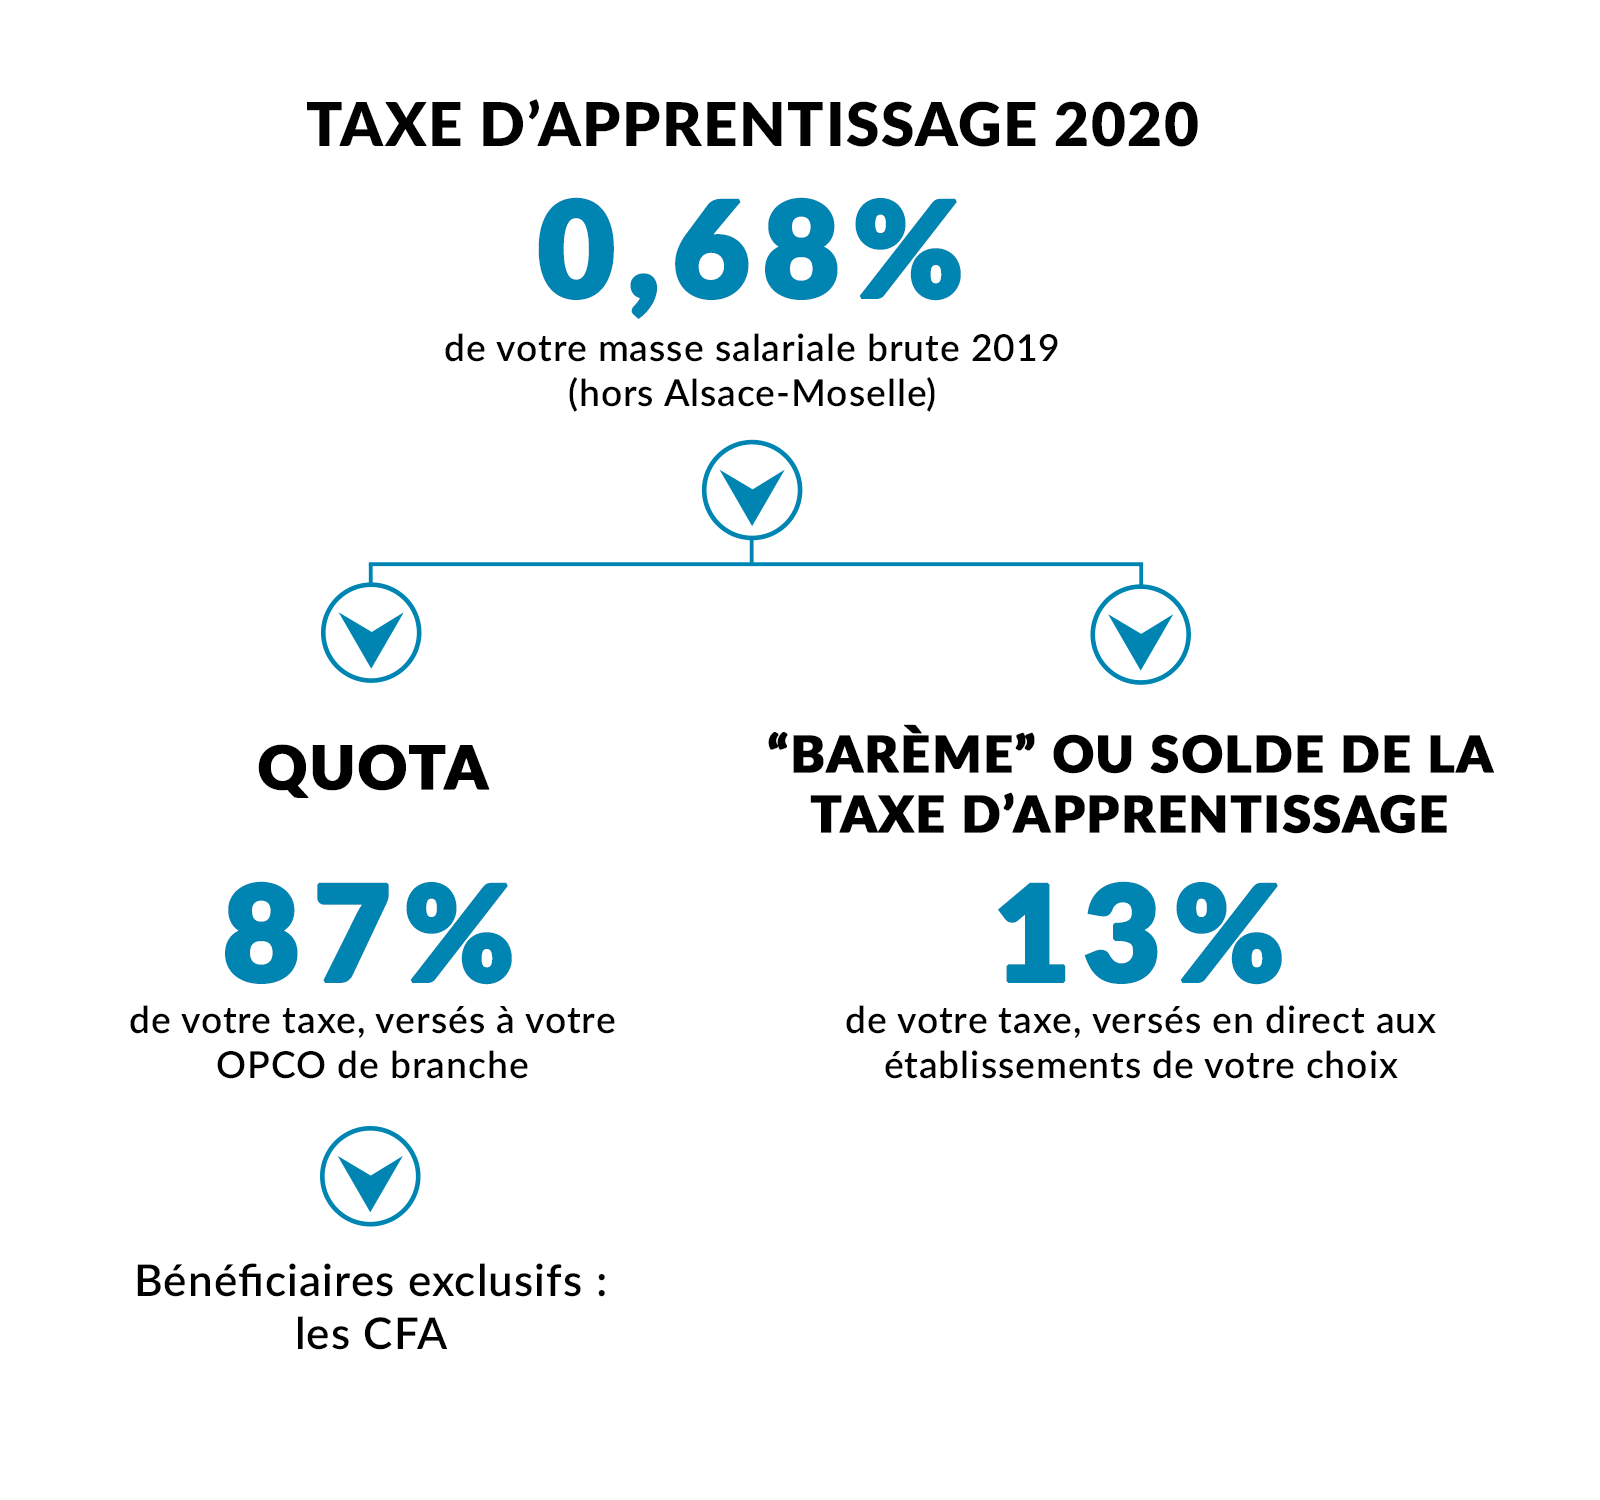 schema-taxe-apprentissage-inasup.png